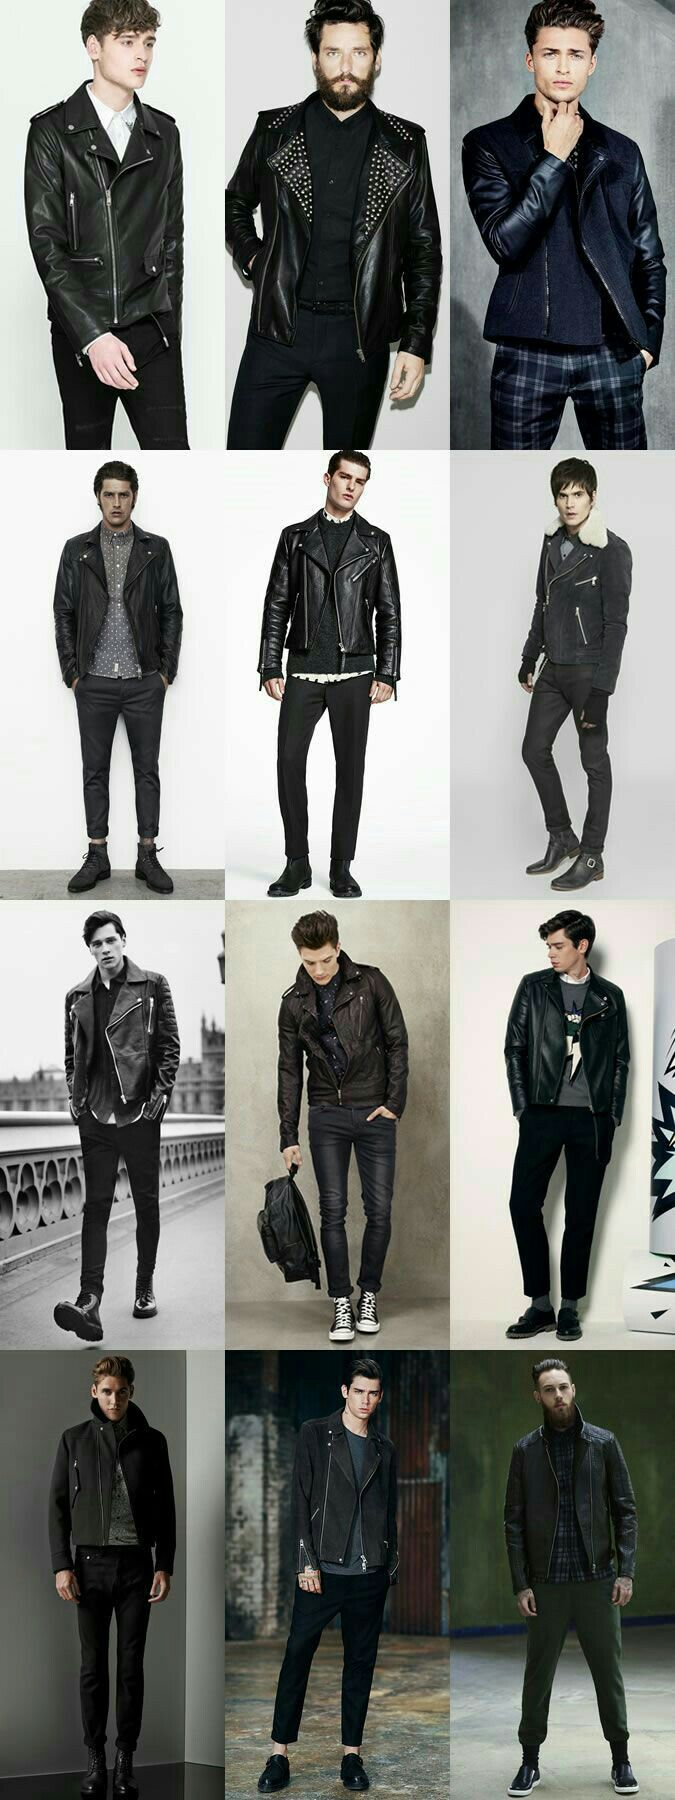 Style Rock clothing men recommend to wear for spring in 2019